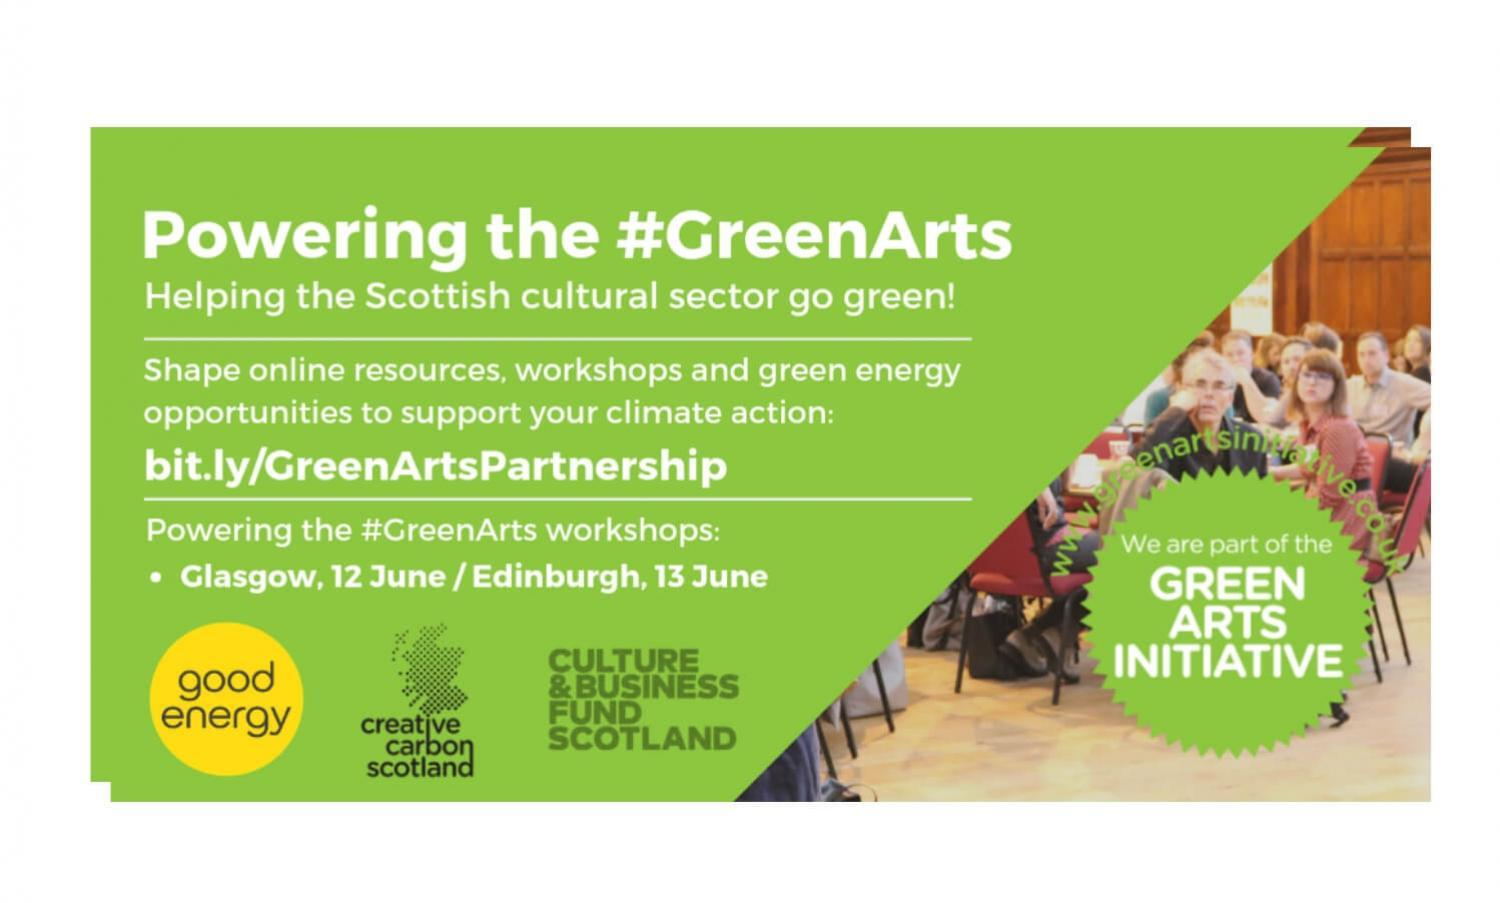 Powering the Green Arts